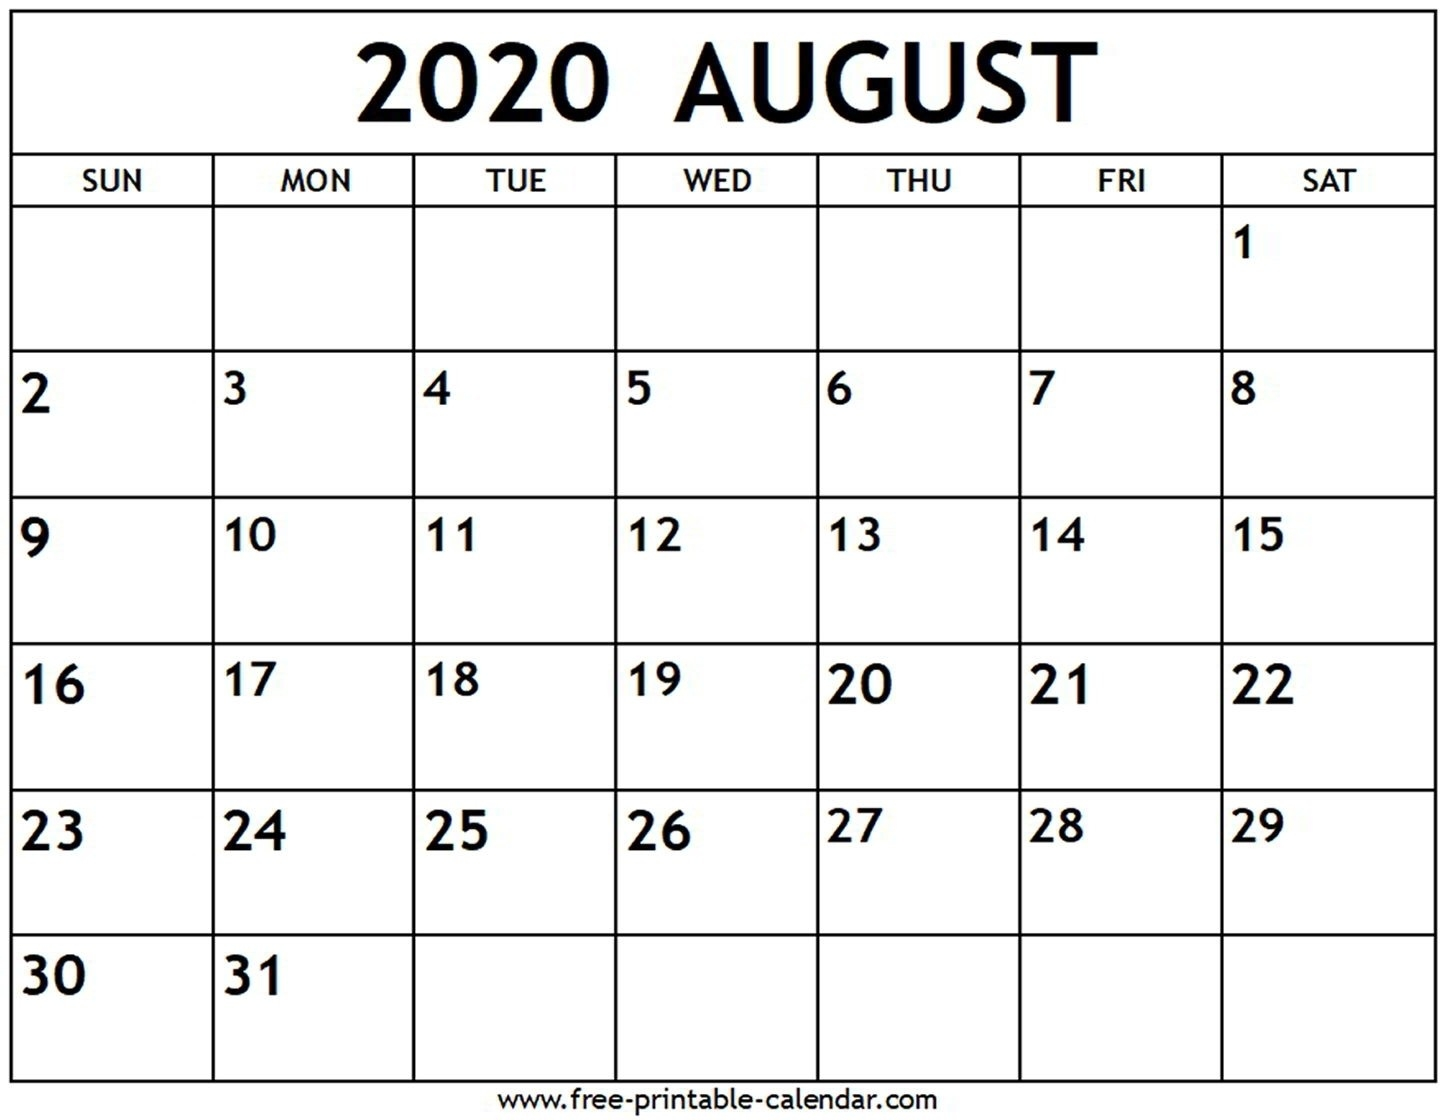 A Monthly Calander For June July August 2020   Monthly-Monthly Calendar June July August 2020